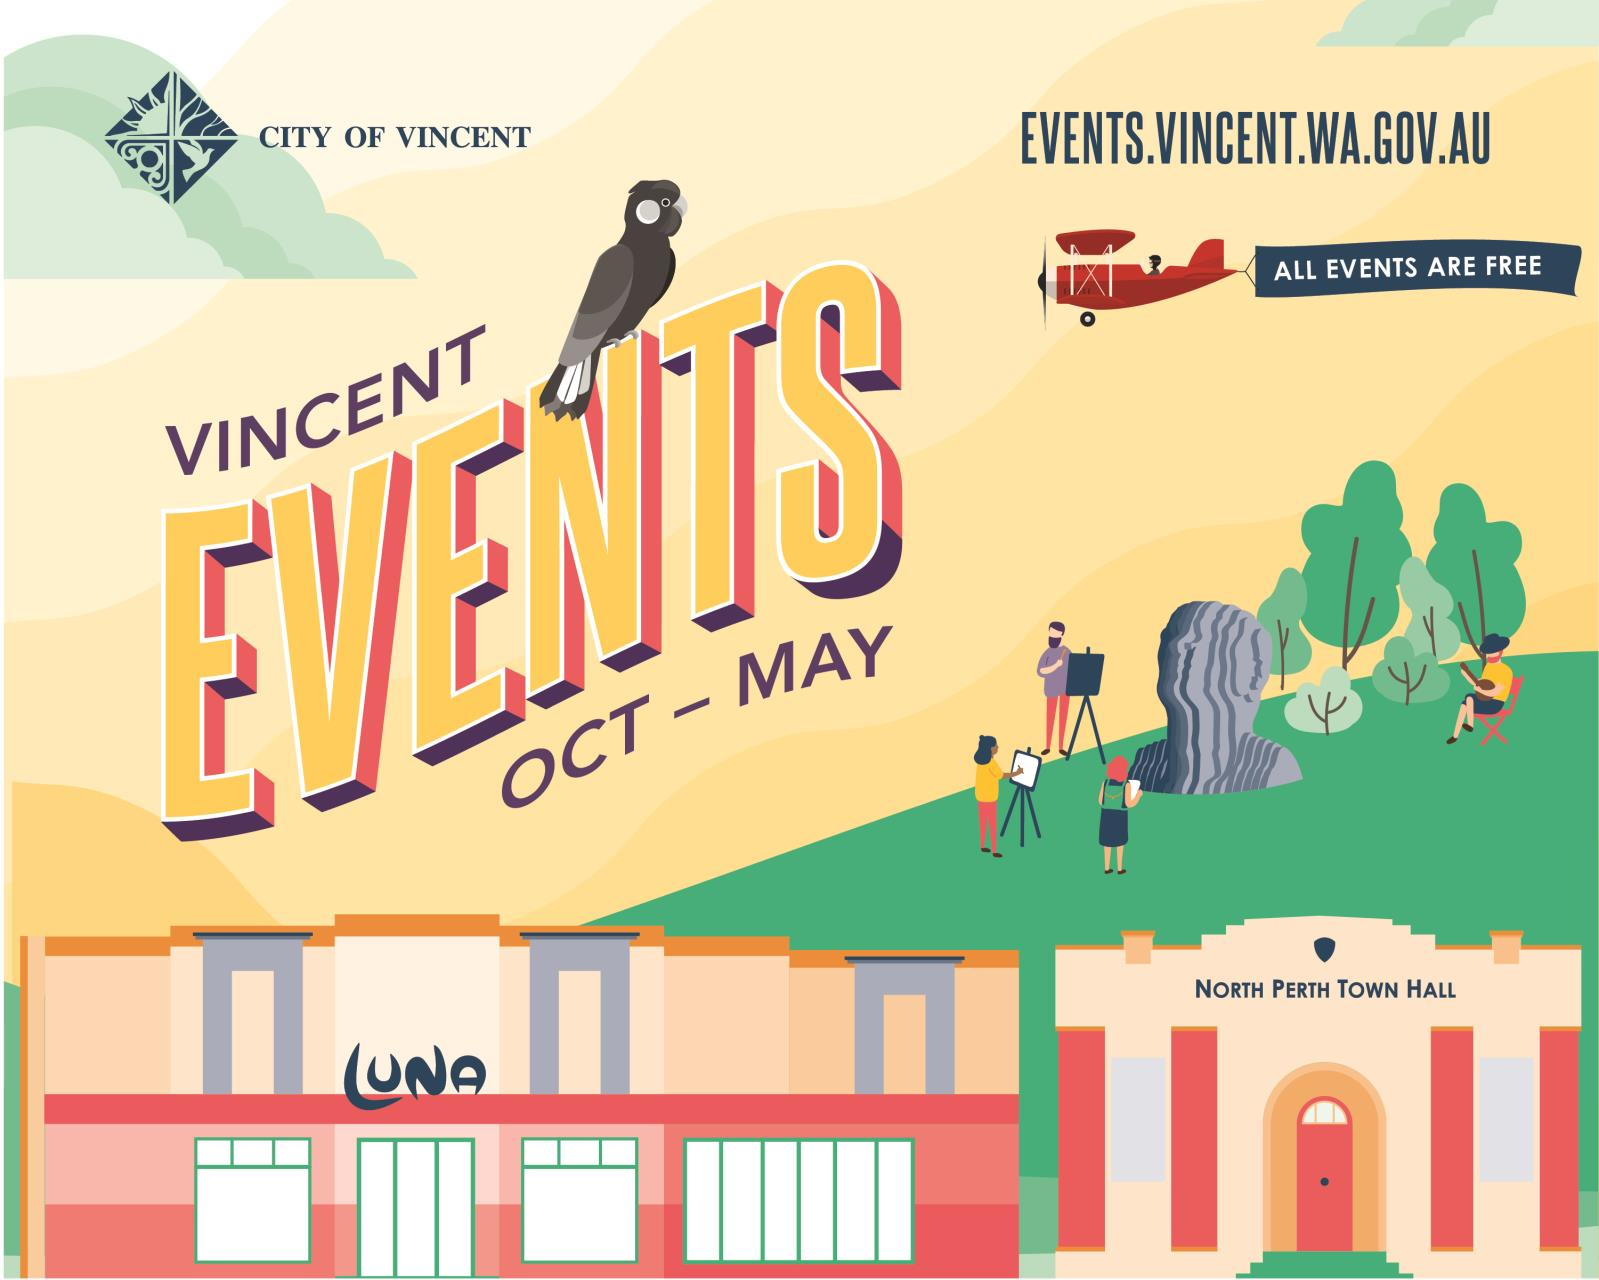 Vincent Events